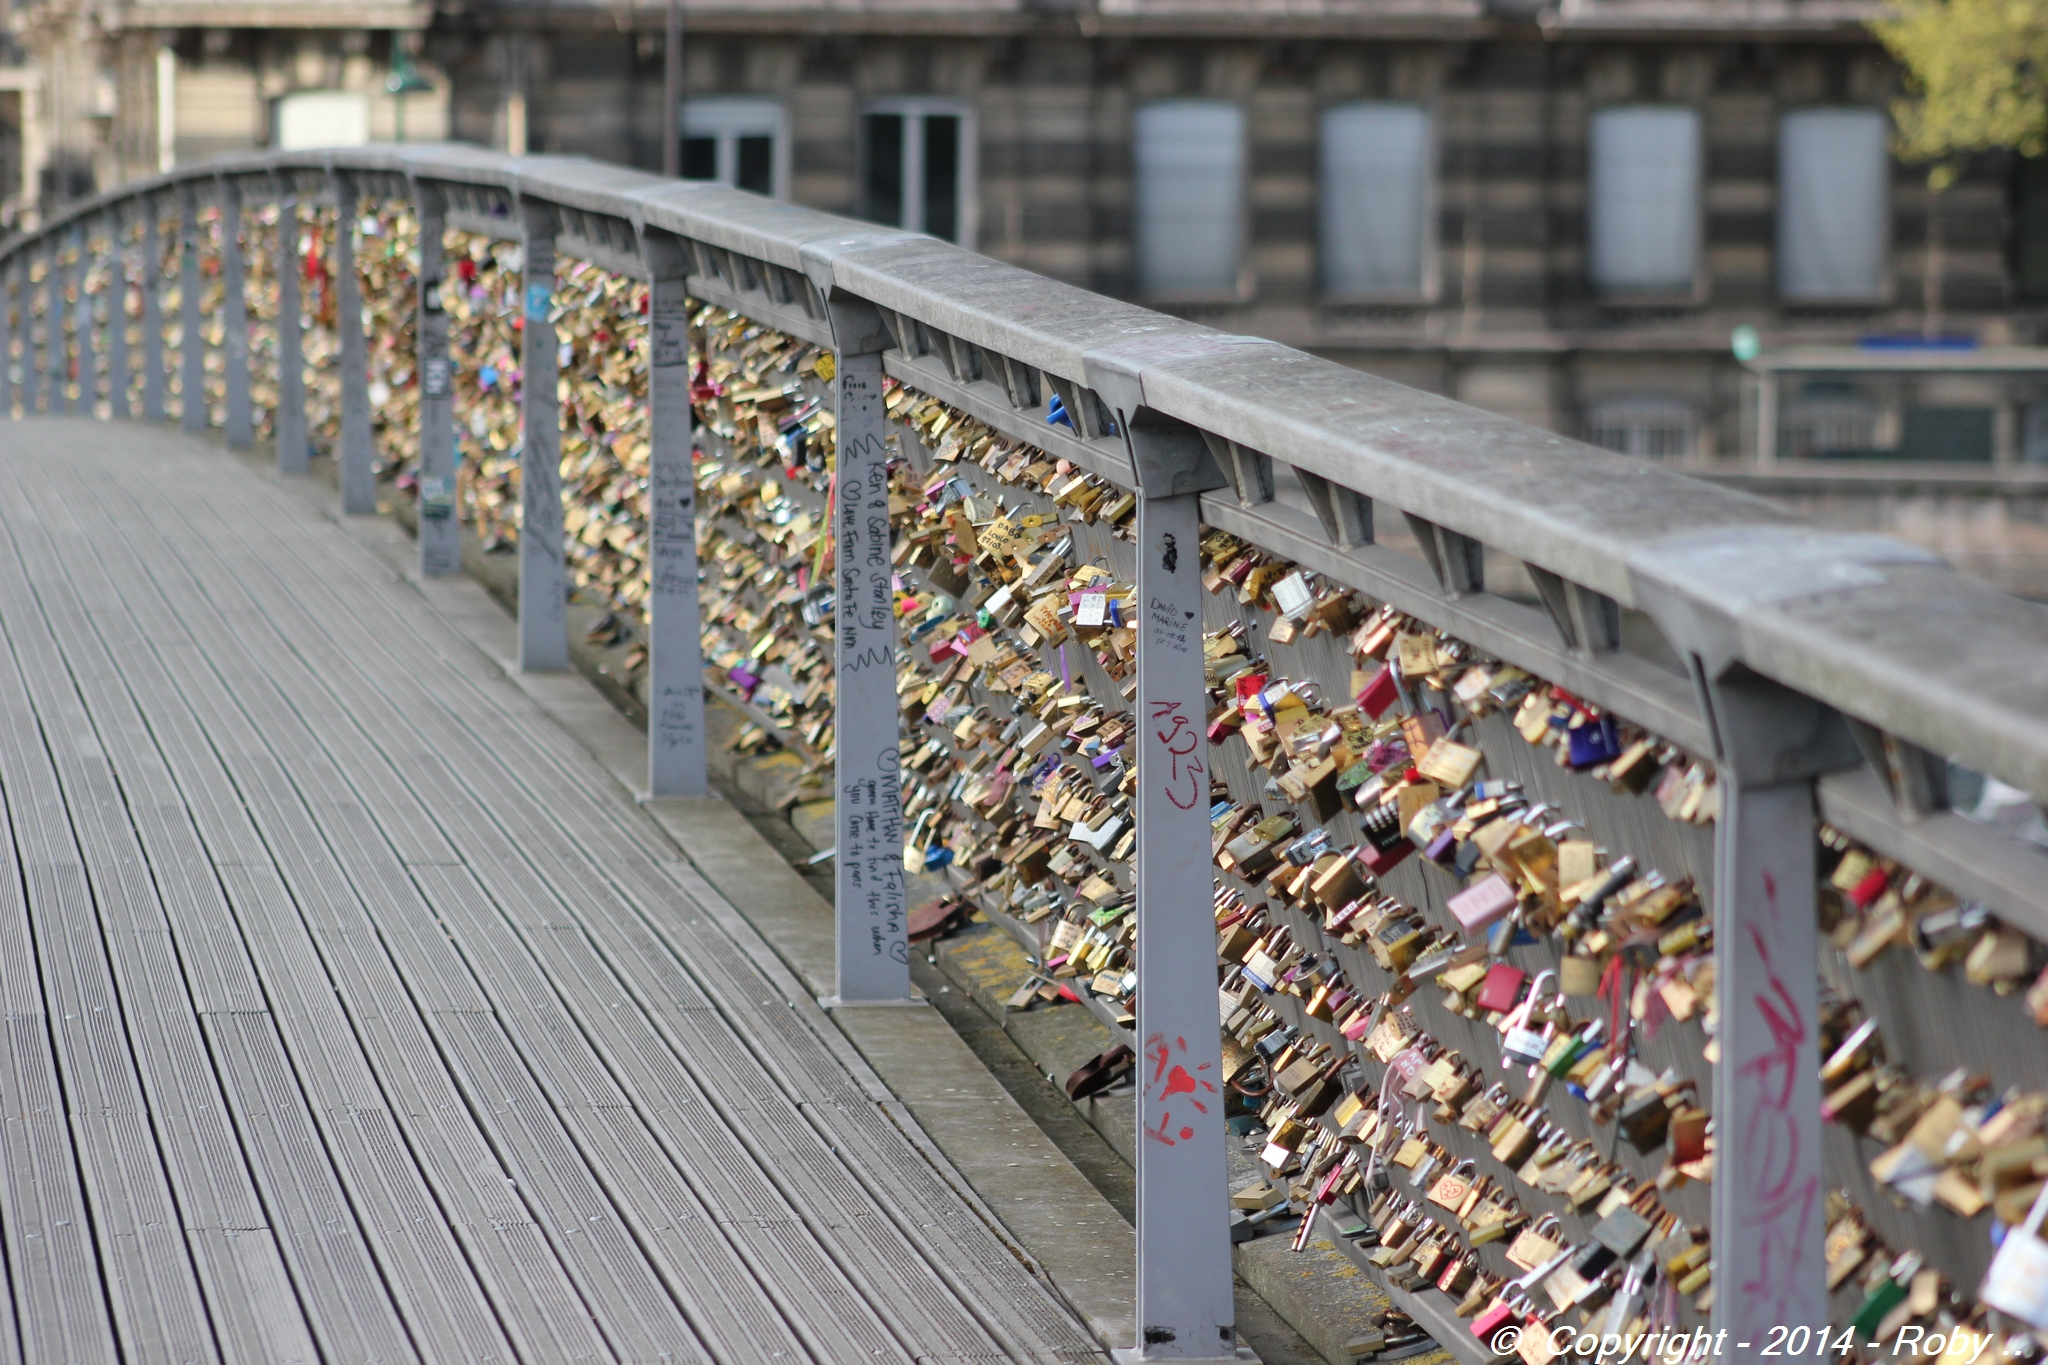 Roby-IMG_6780-cadenas d'amour